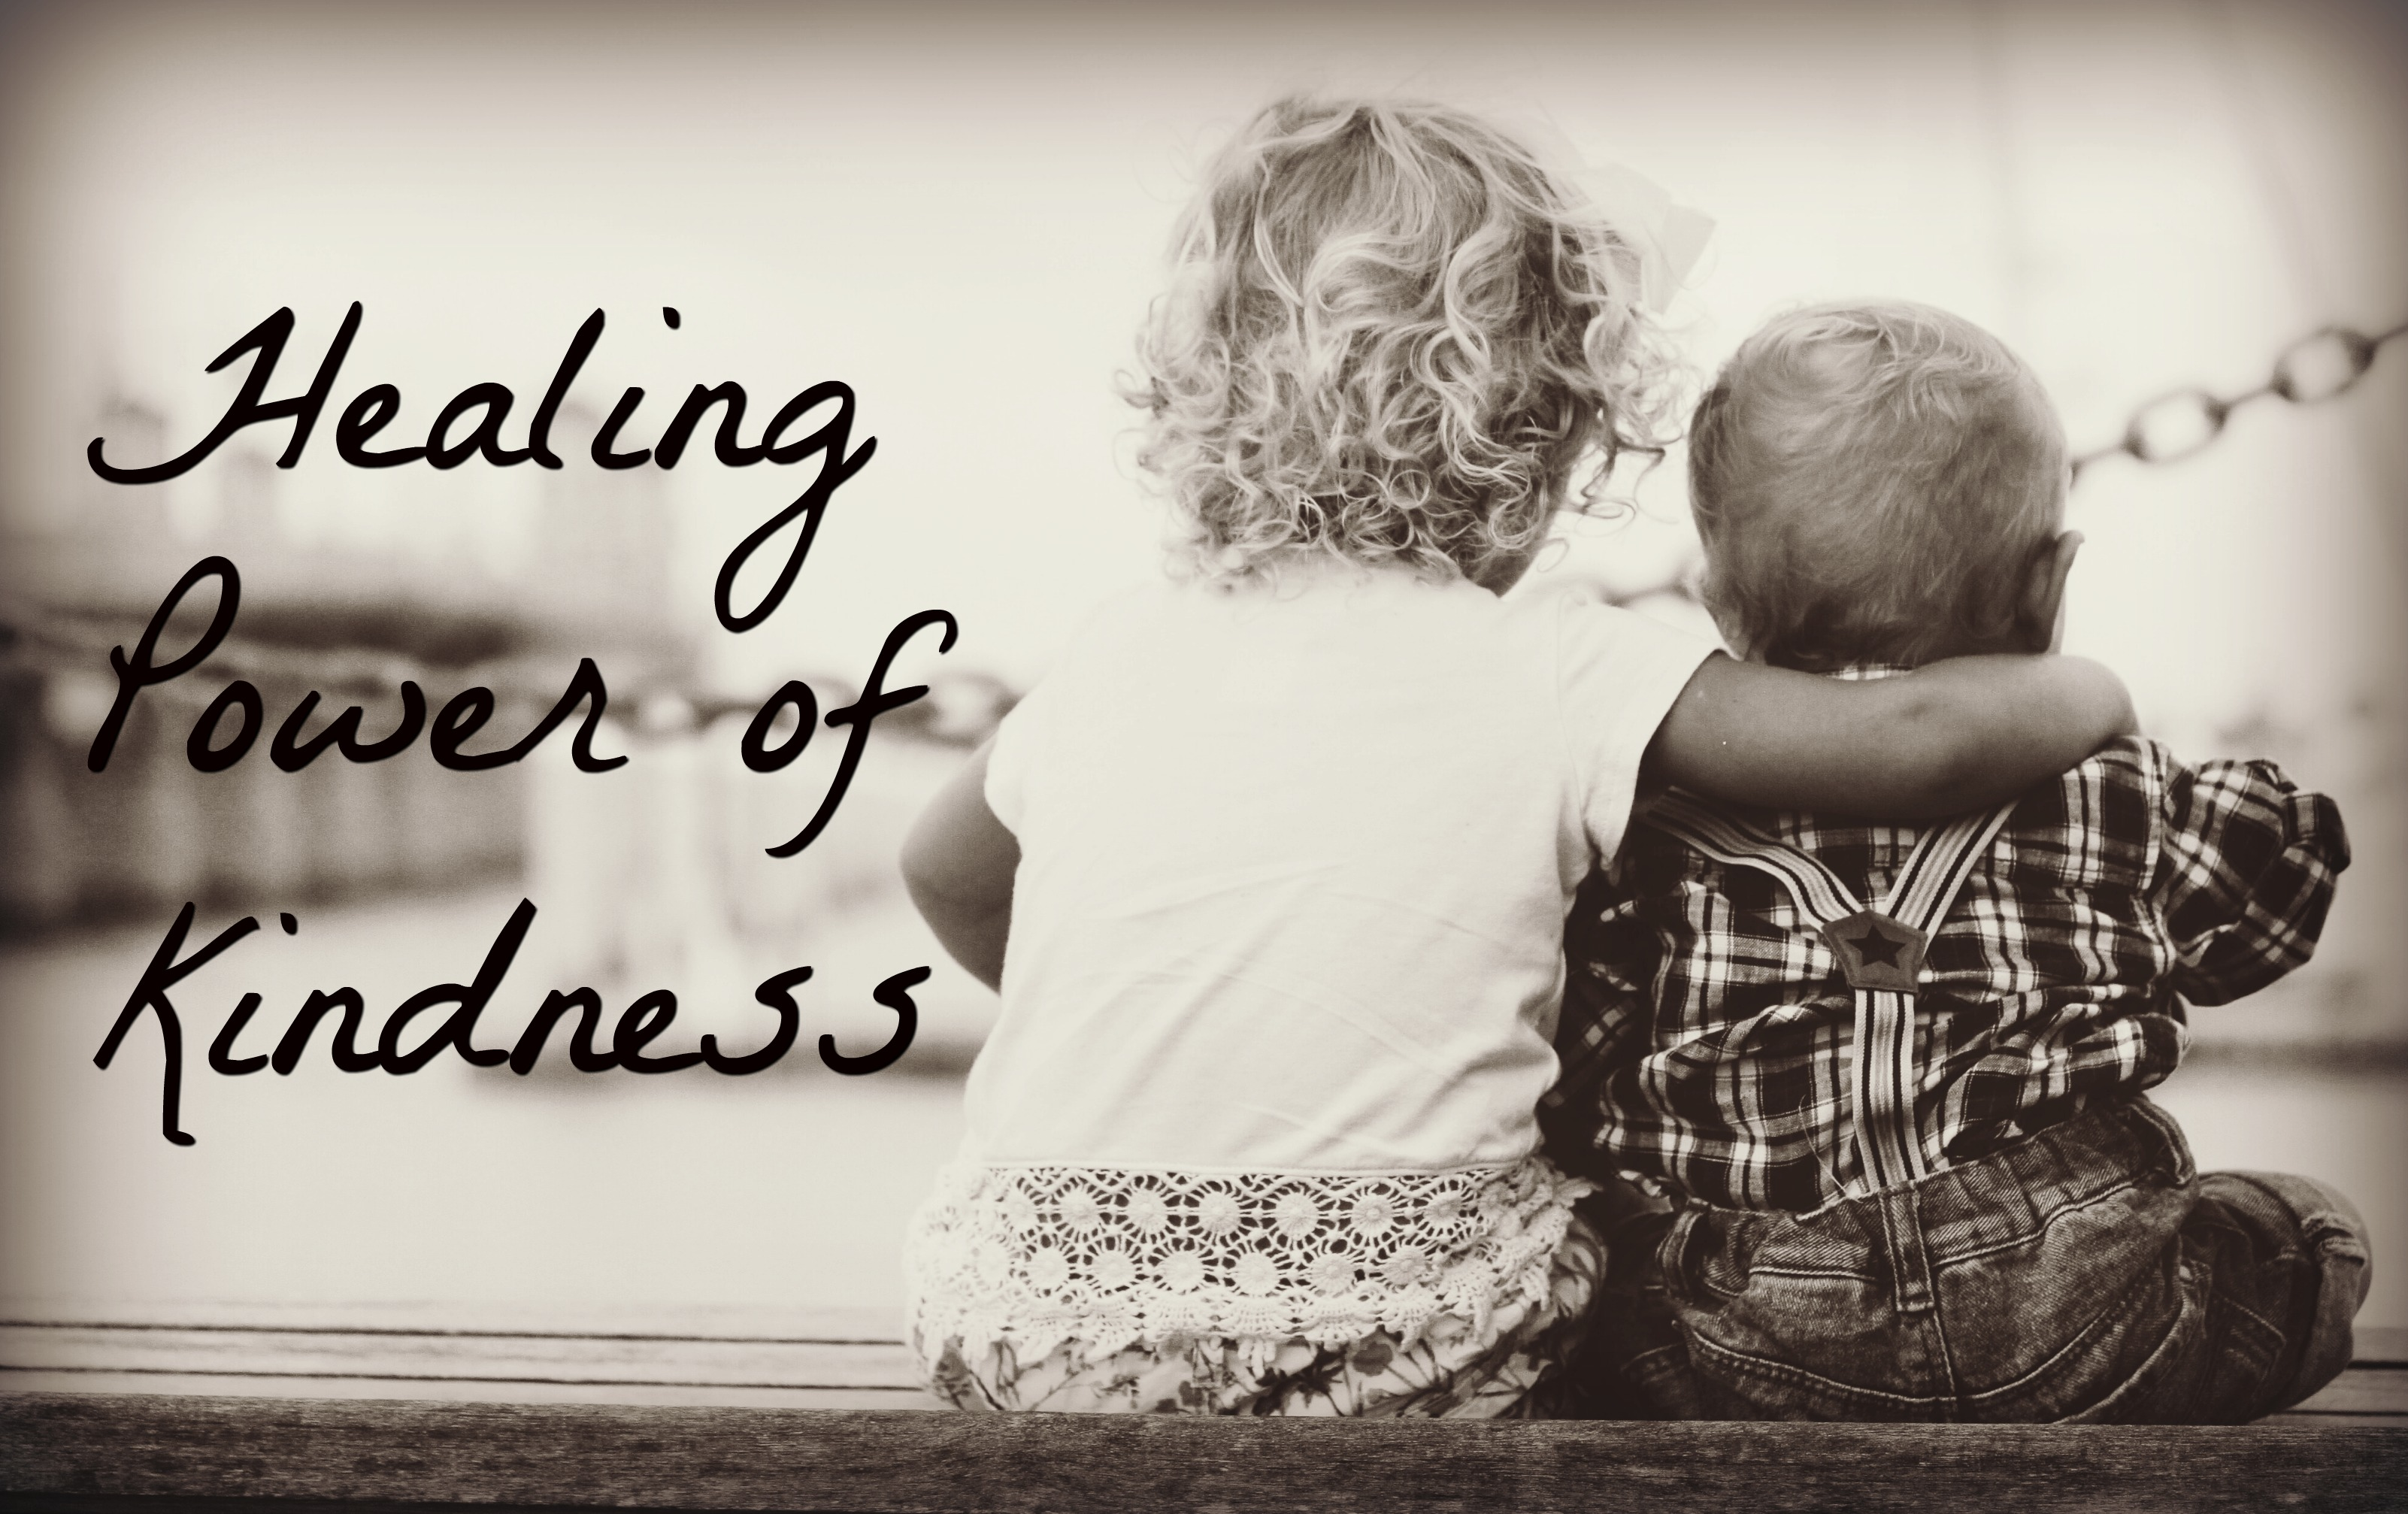 Healing Power of Kindness